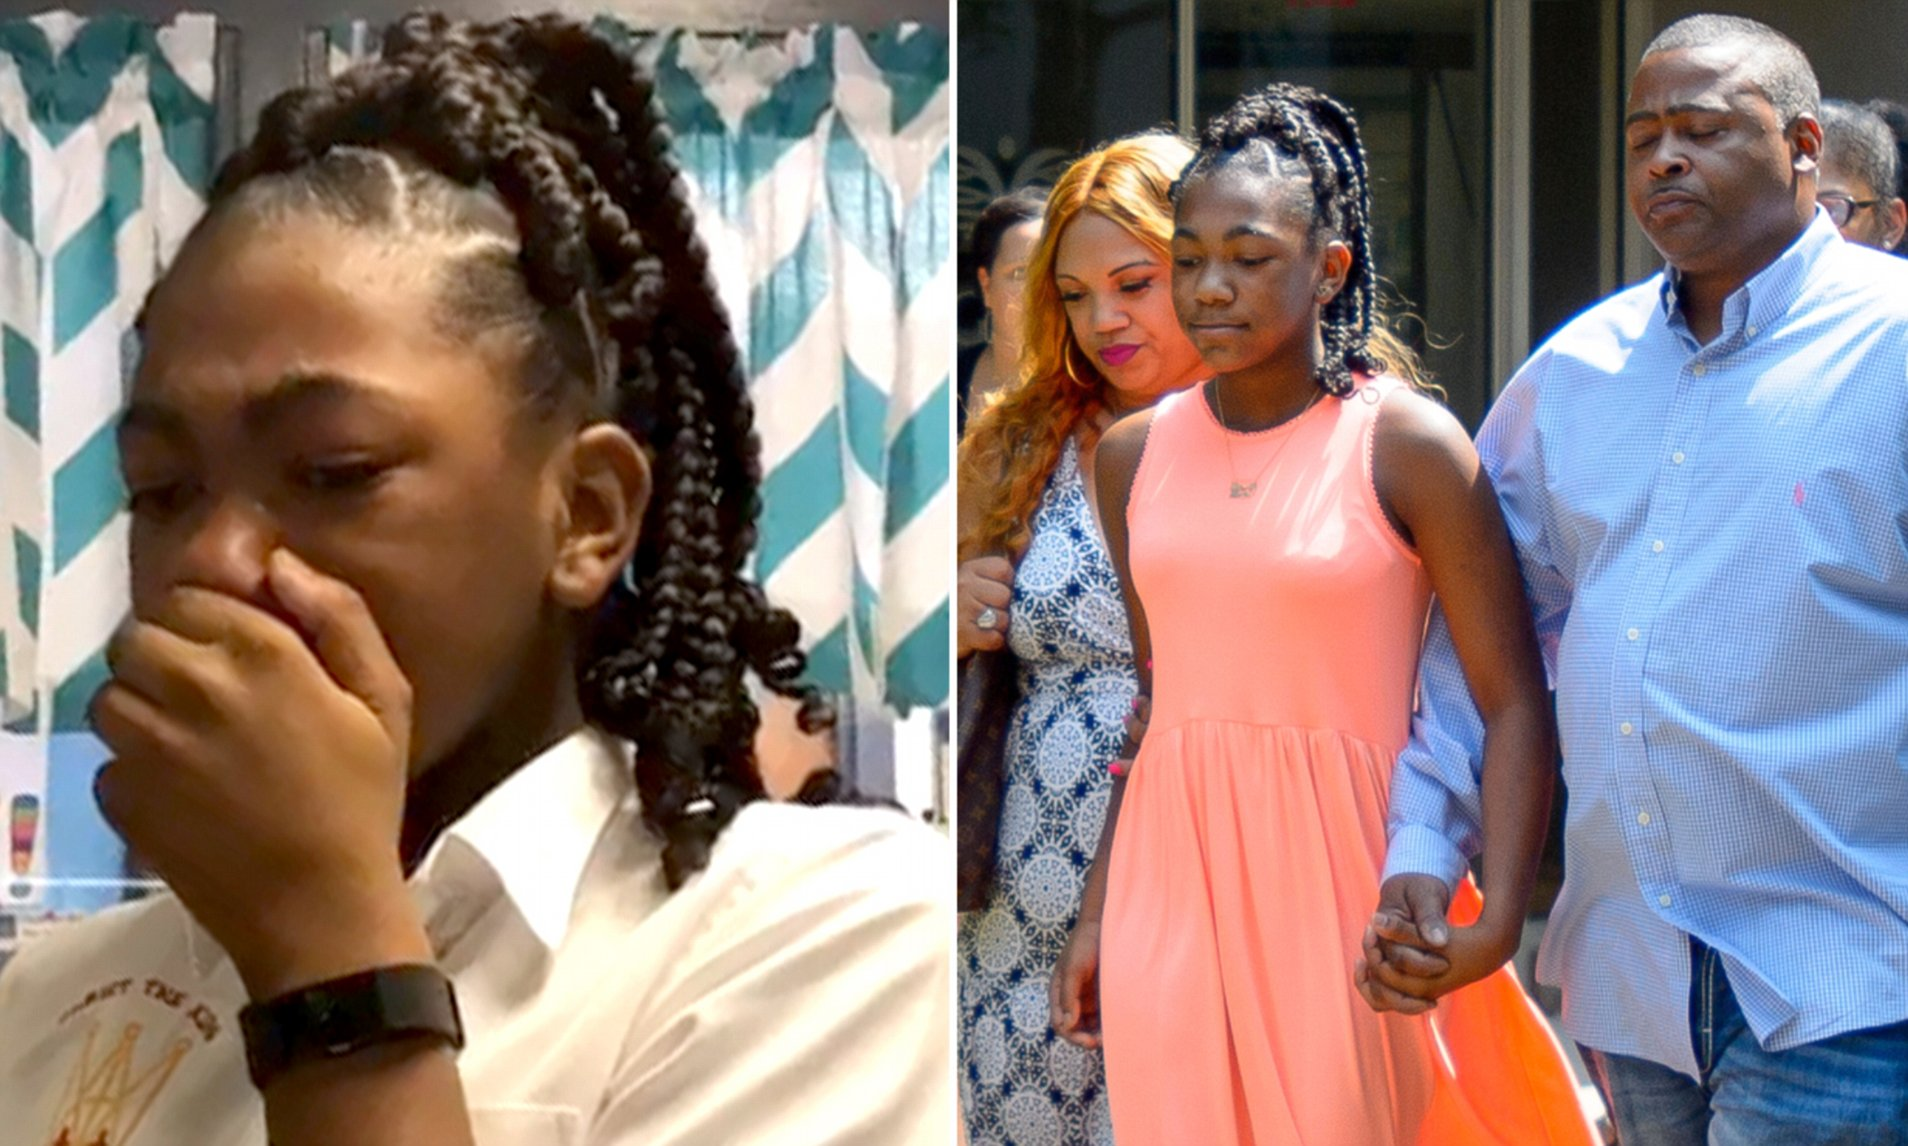 Black Girl 11 Told Her Braids Violated Policy Might Return To